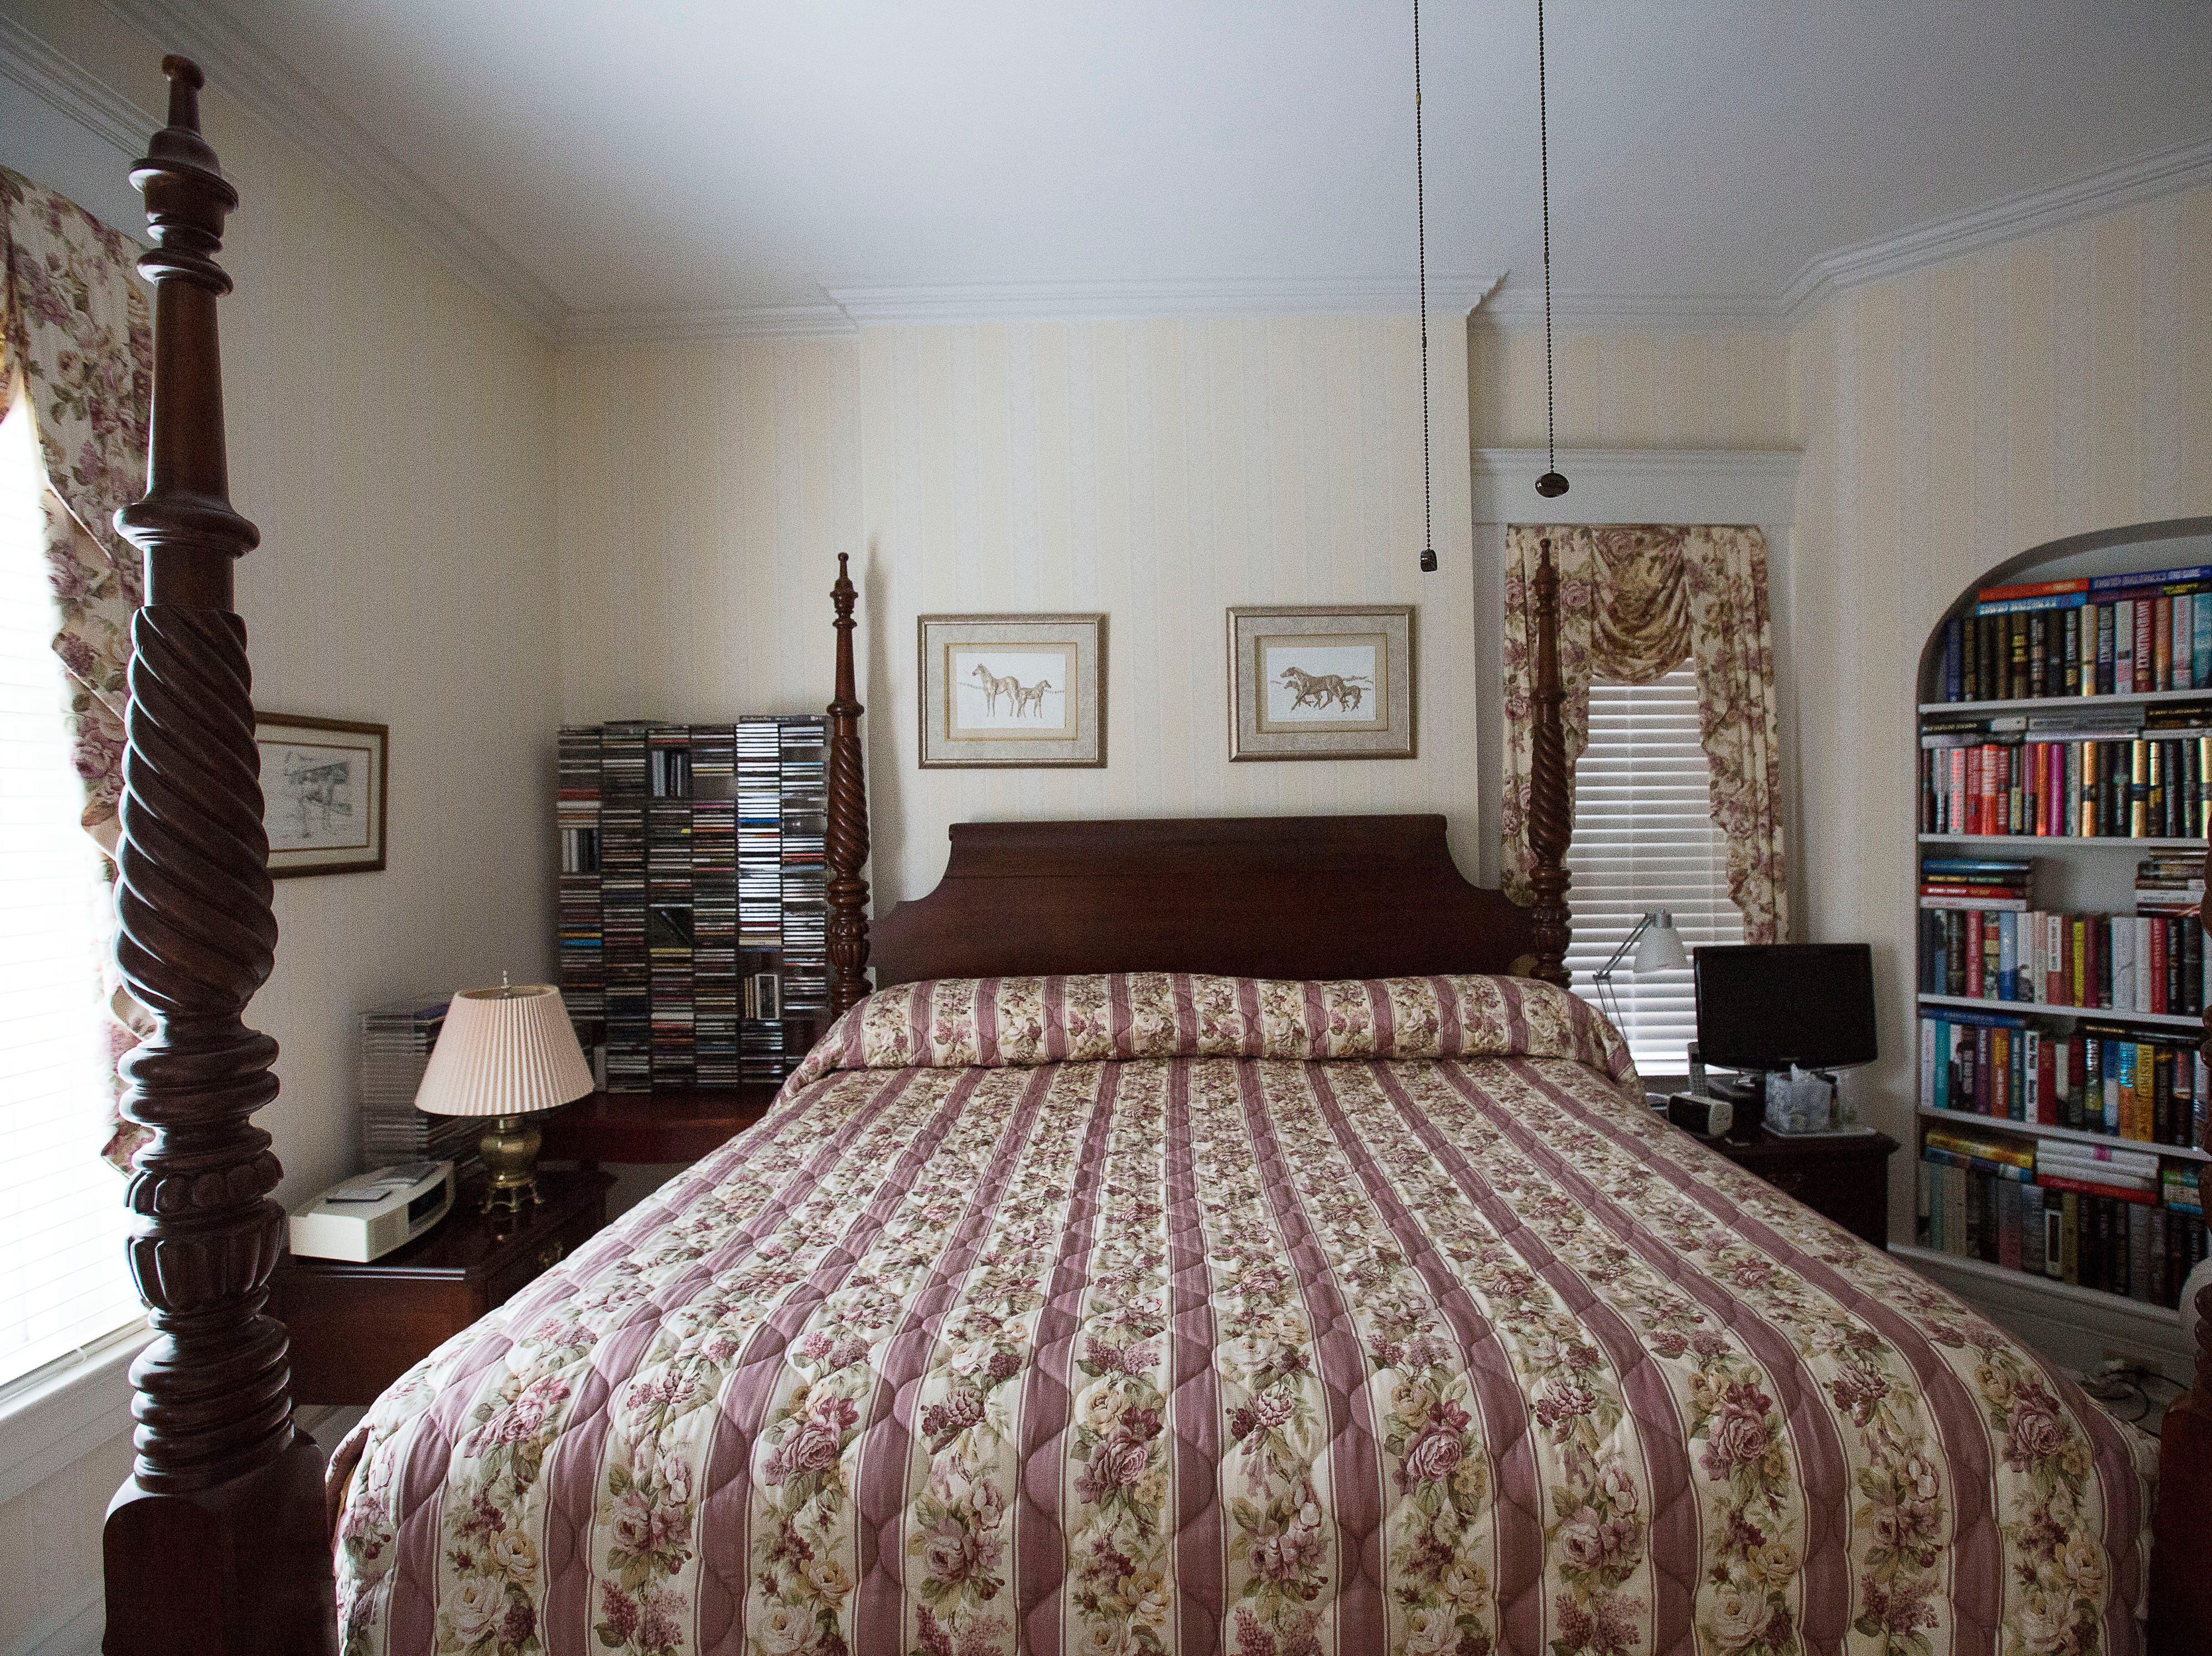 Second floor bedroom at historic Cherokee Triangle home in Louisville, KY.